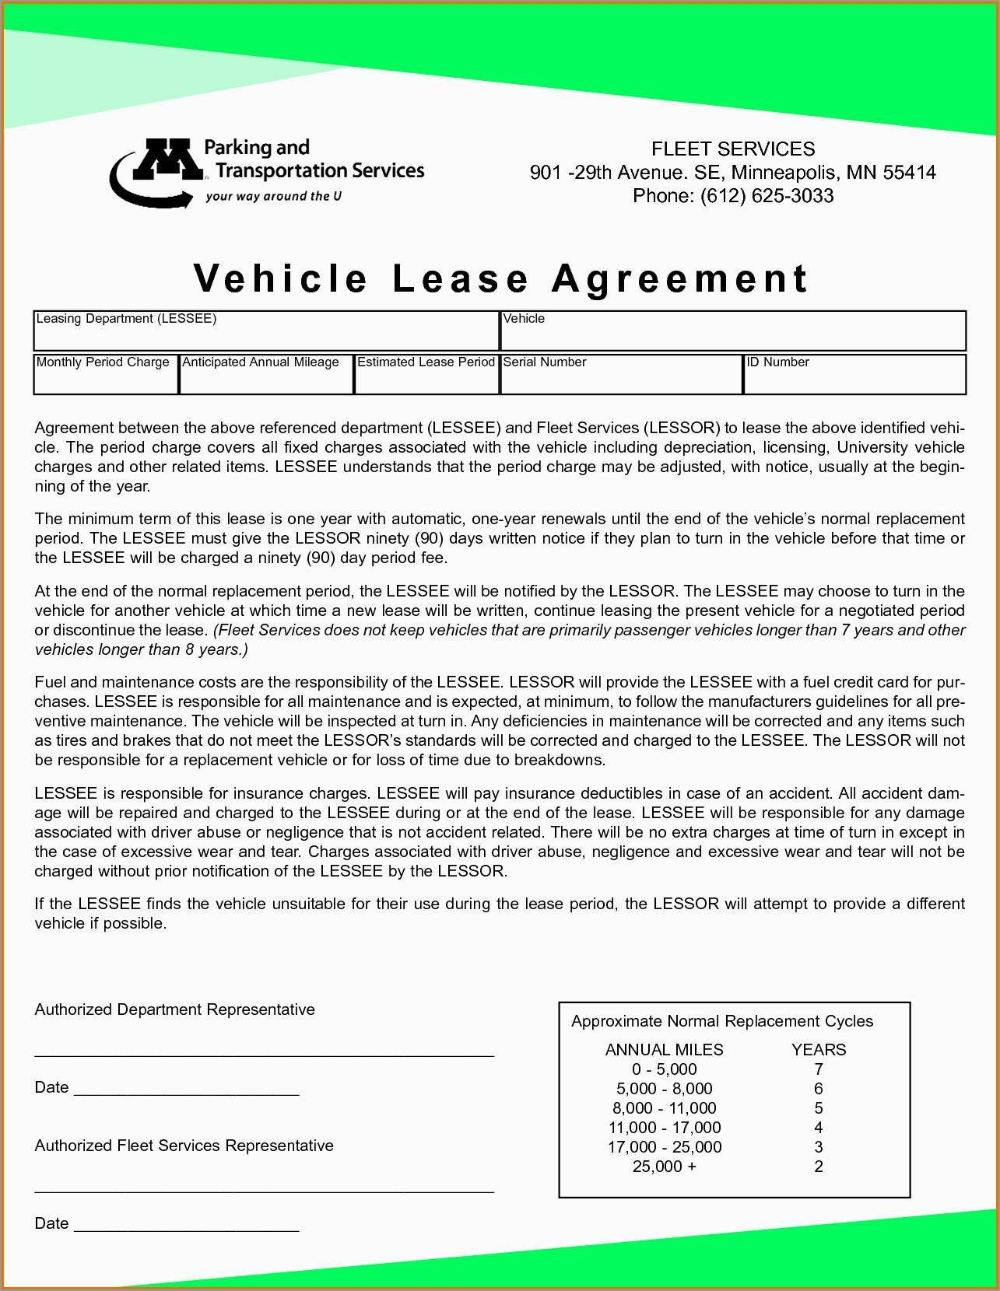 001 Marvelou Car Rental Agreement Template Highest Clarity  Vehicle Rent To Own South Africa SingaporeFull